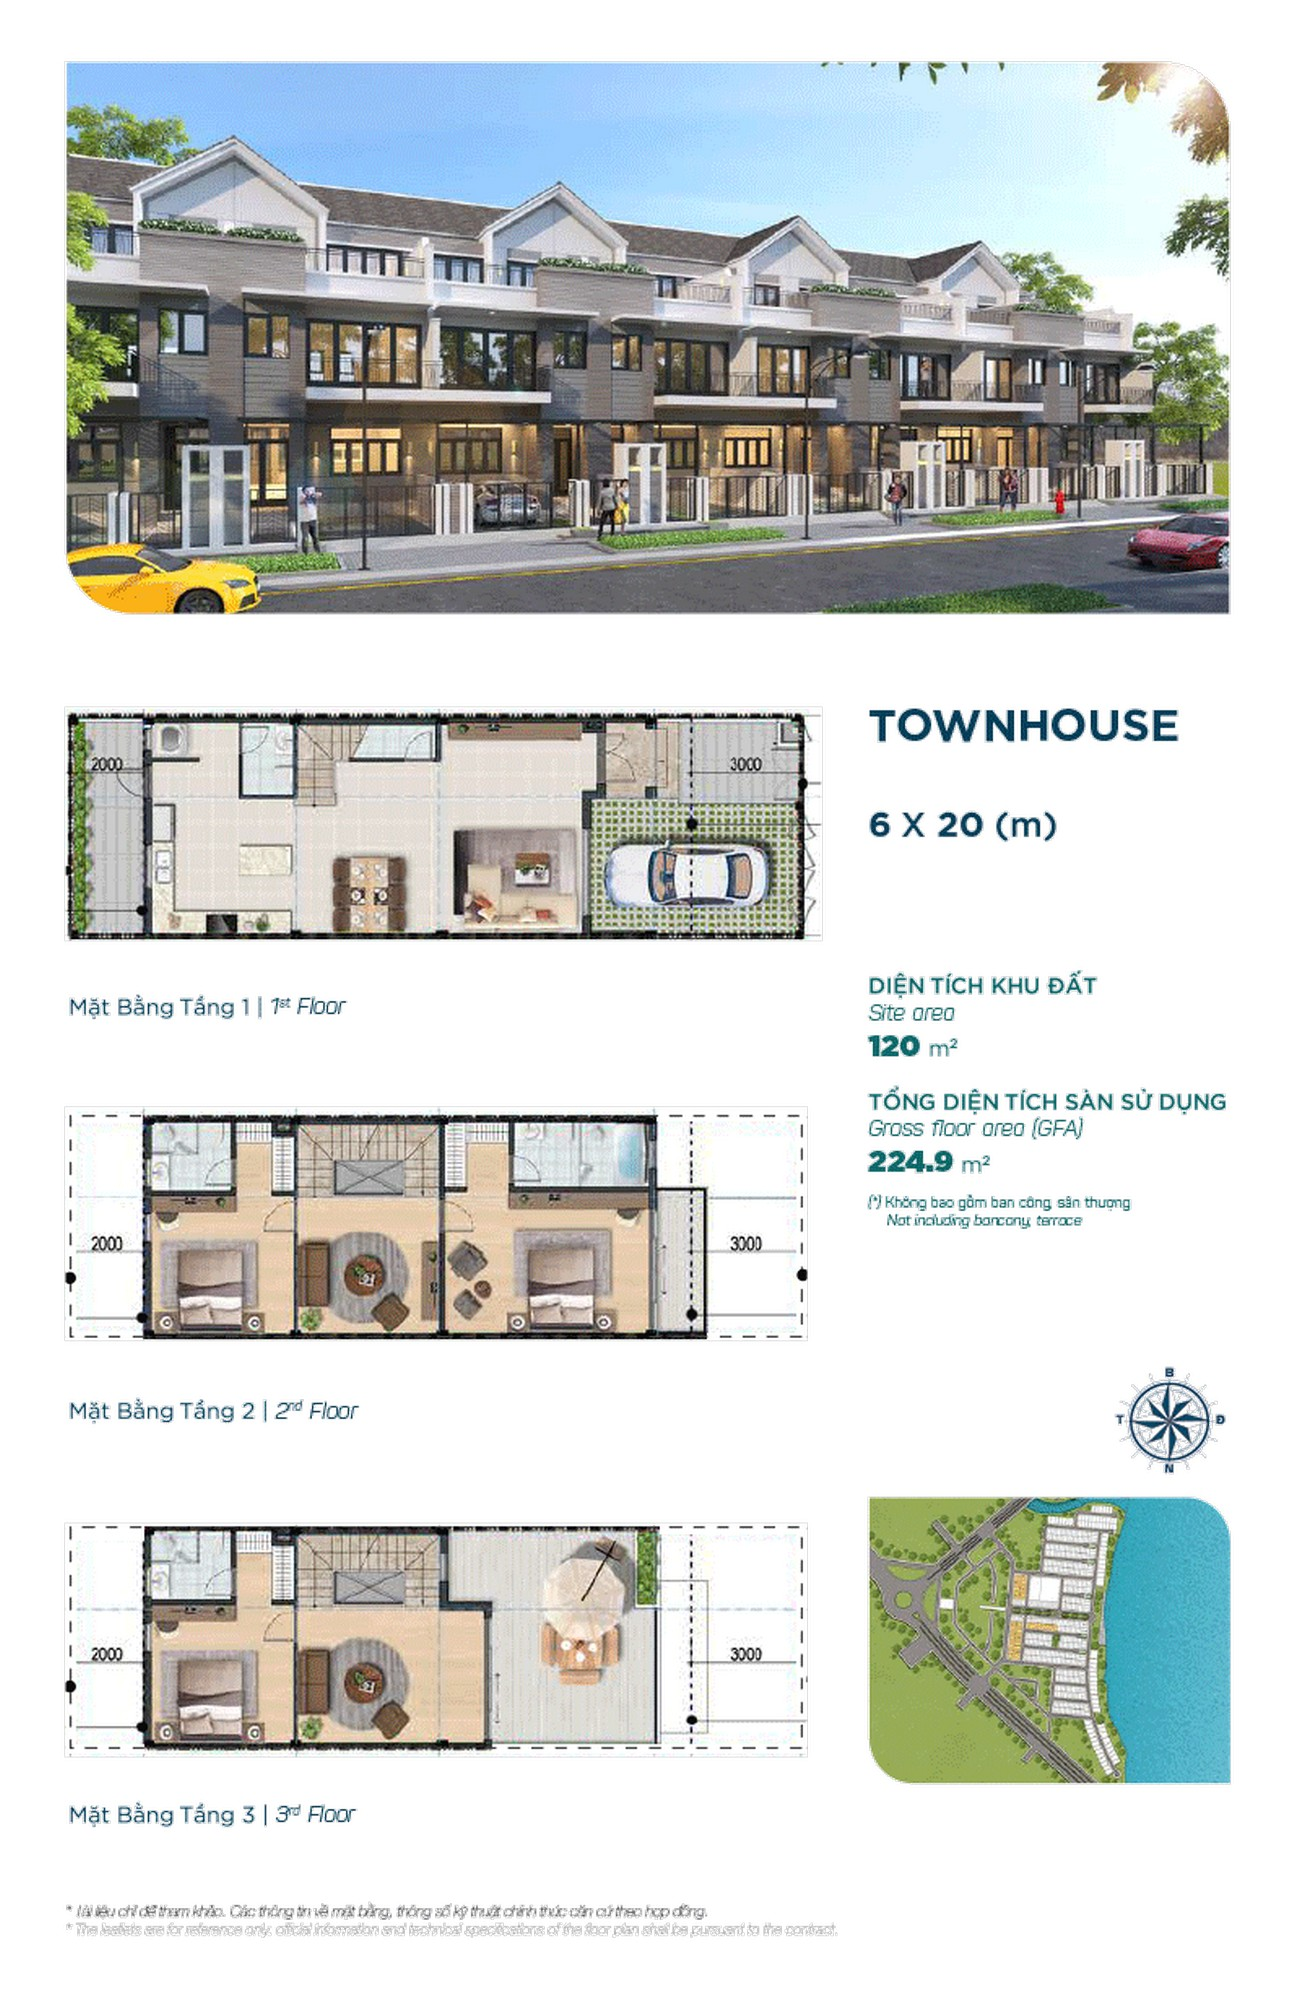 Townhouse The Elite 6x20m - Dự án Aqua City The Elite